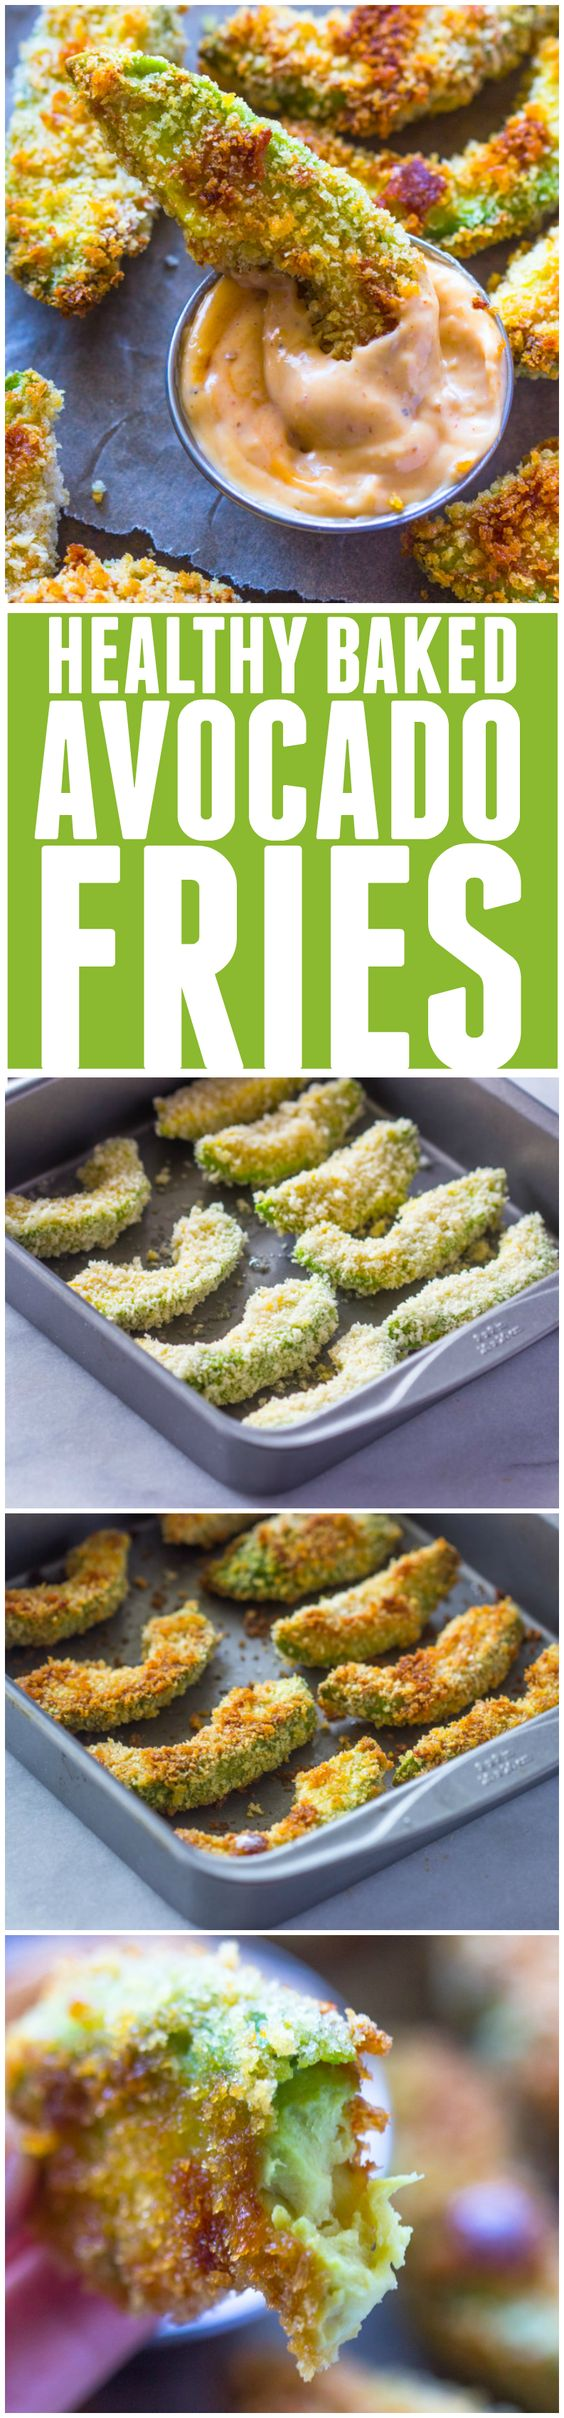 Crispy Baked Avocado Fries & Chipotle Dipping Sauce - ***NOT Paleo or Grain Free: